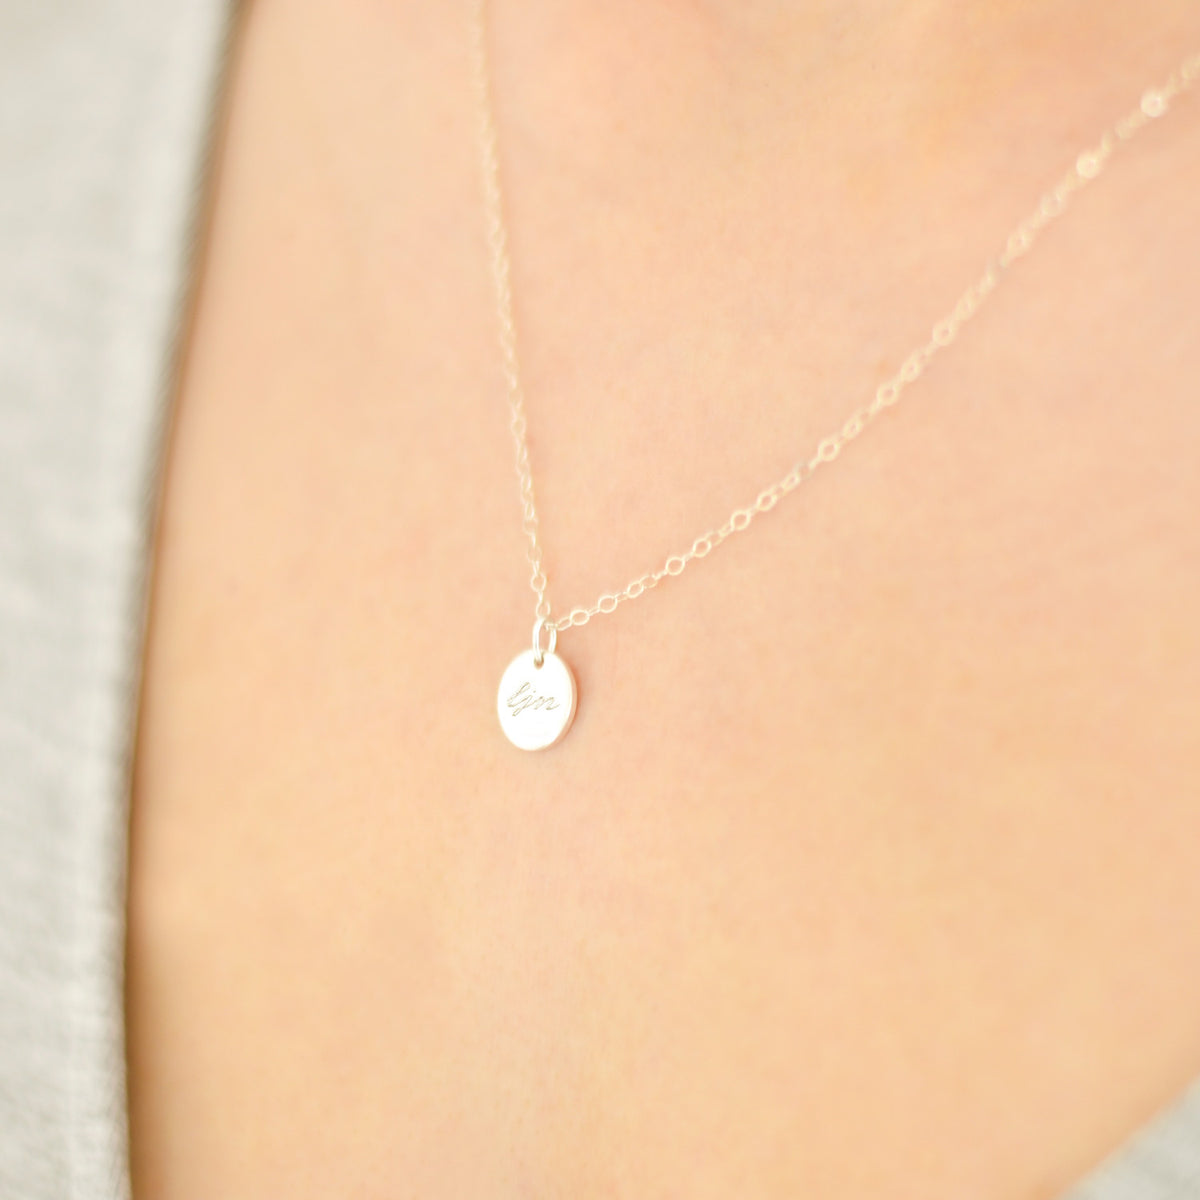 Personalised disc 'initial' necklace 'Bea'